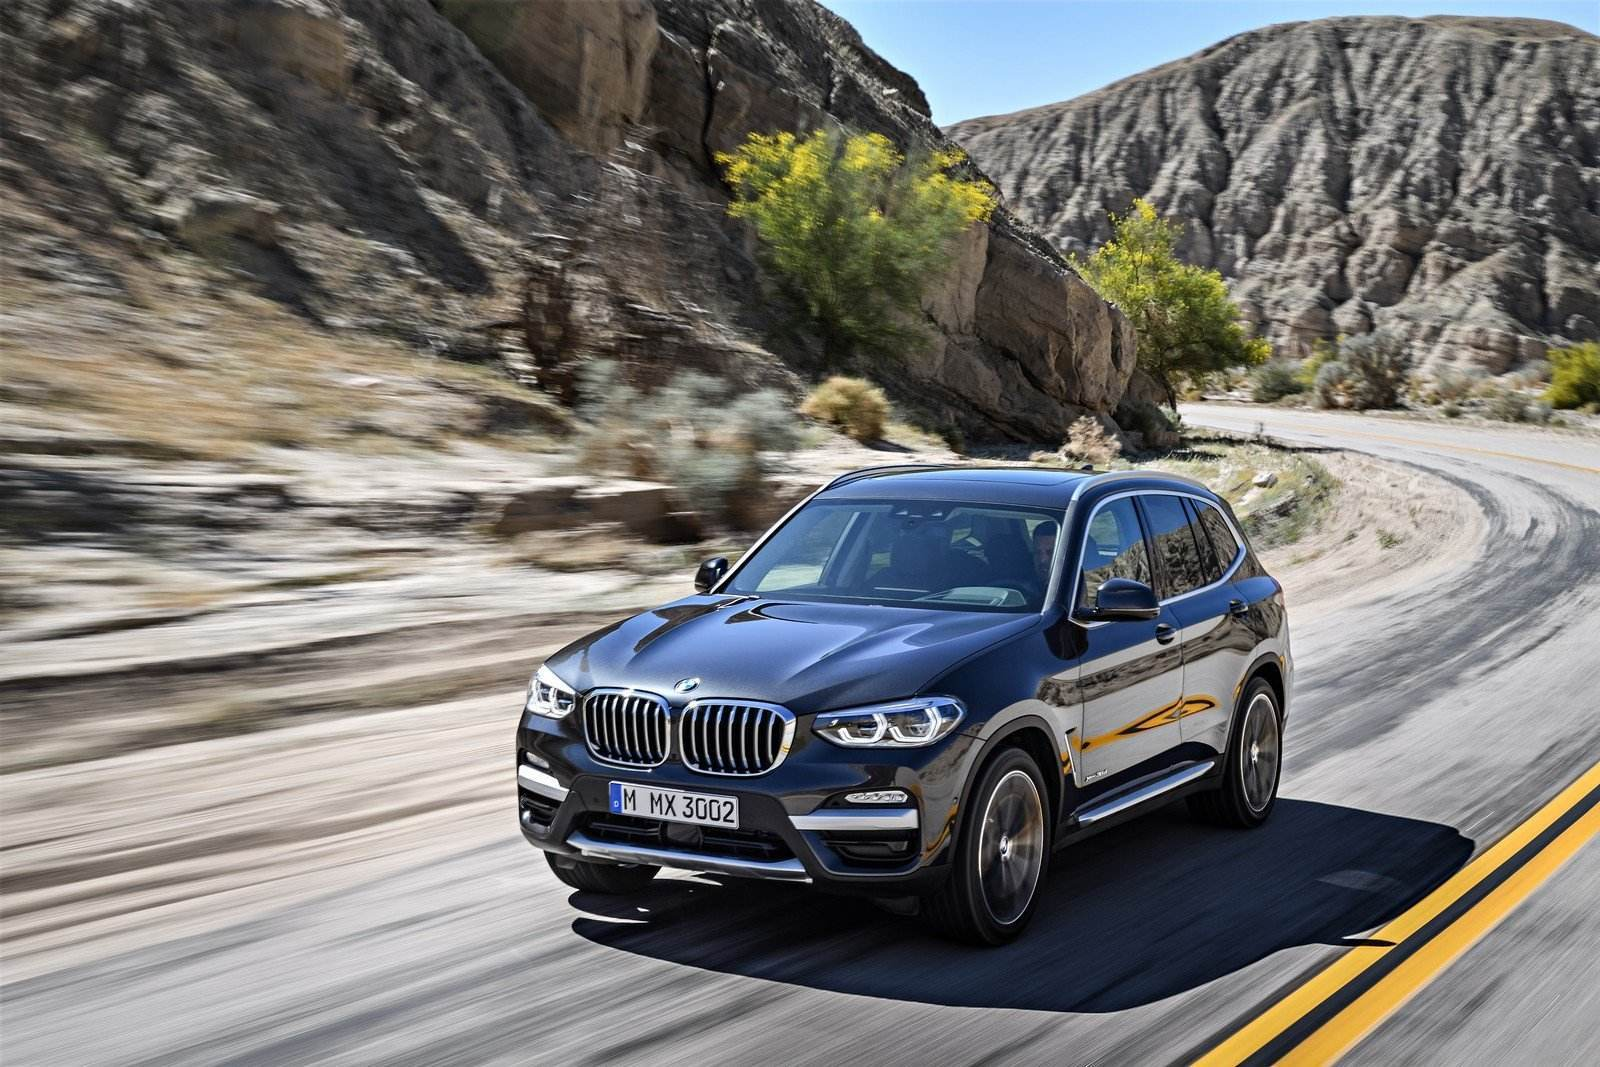 p90263777_highres_the-new-bmw-x3-xdriv